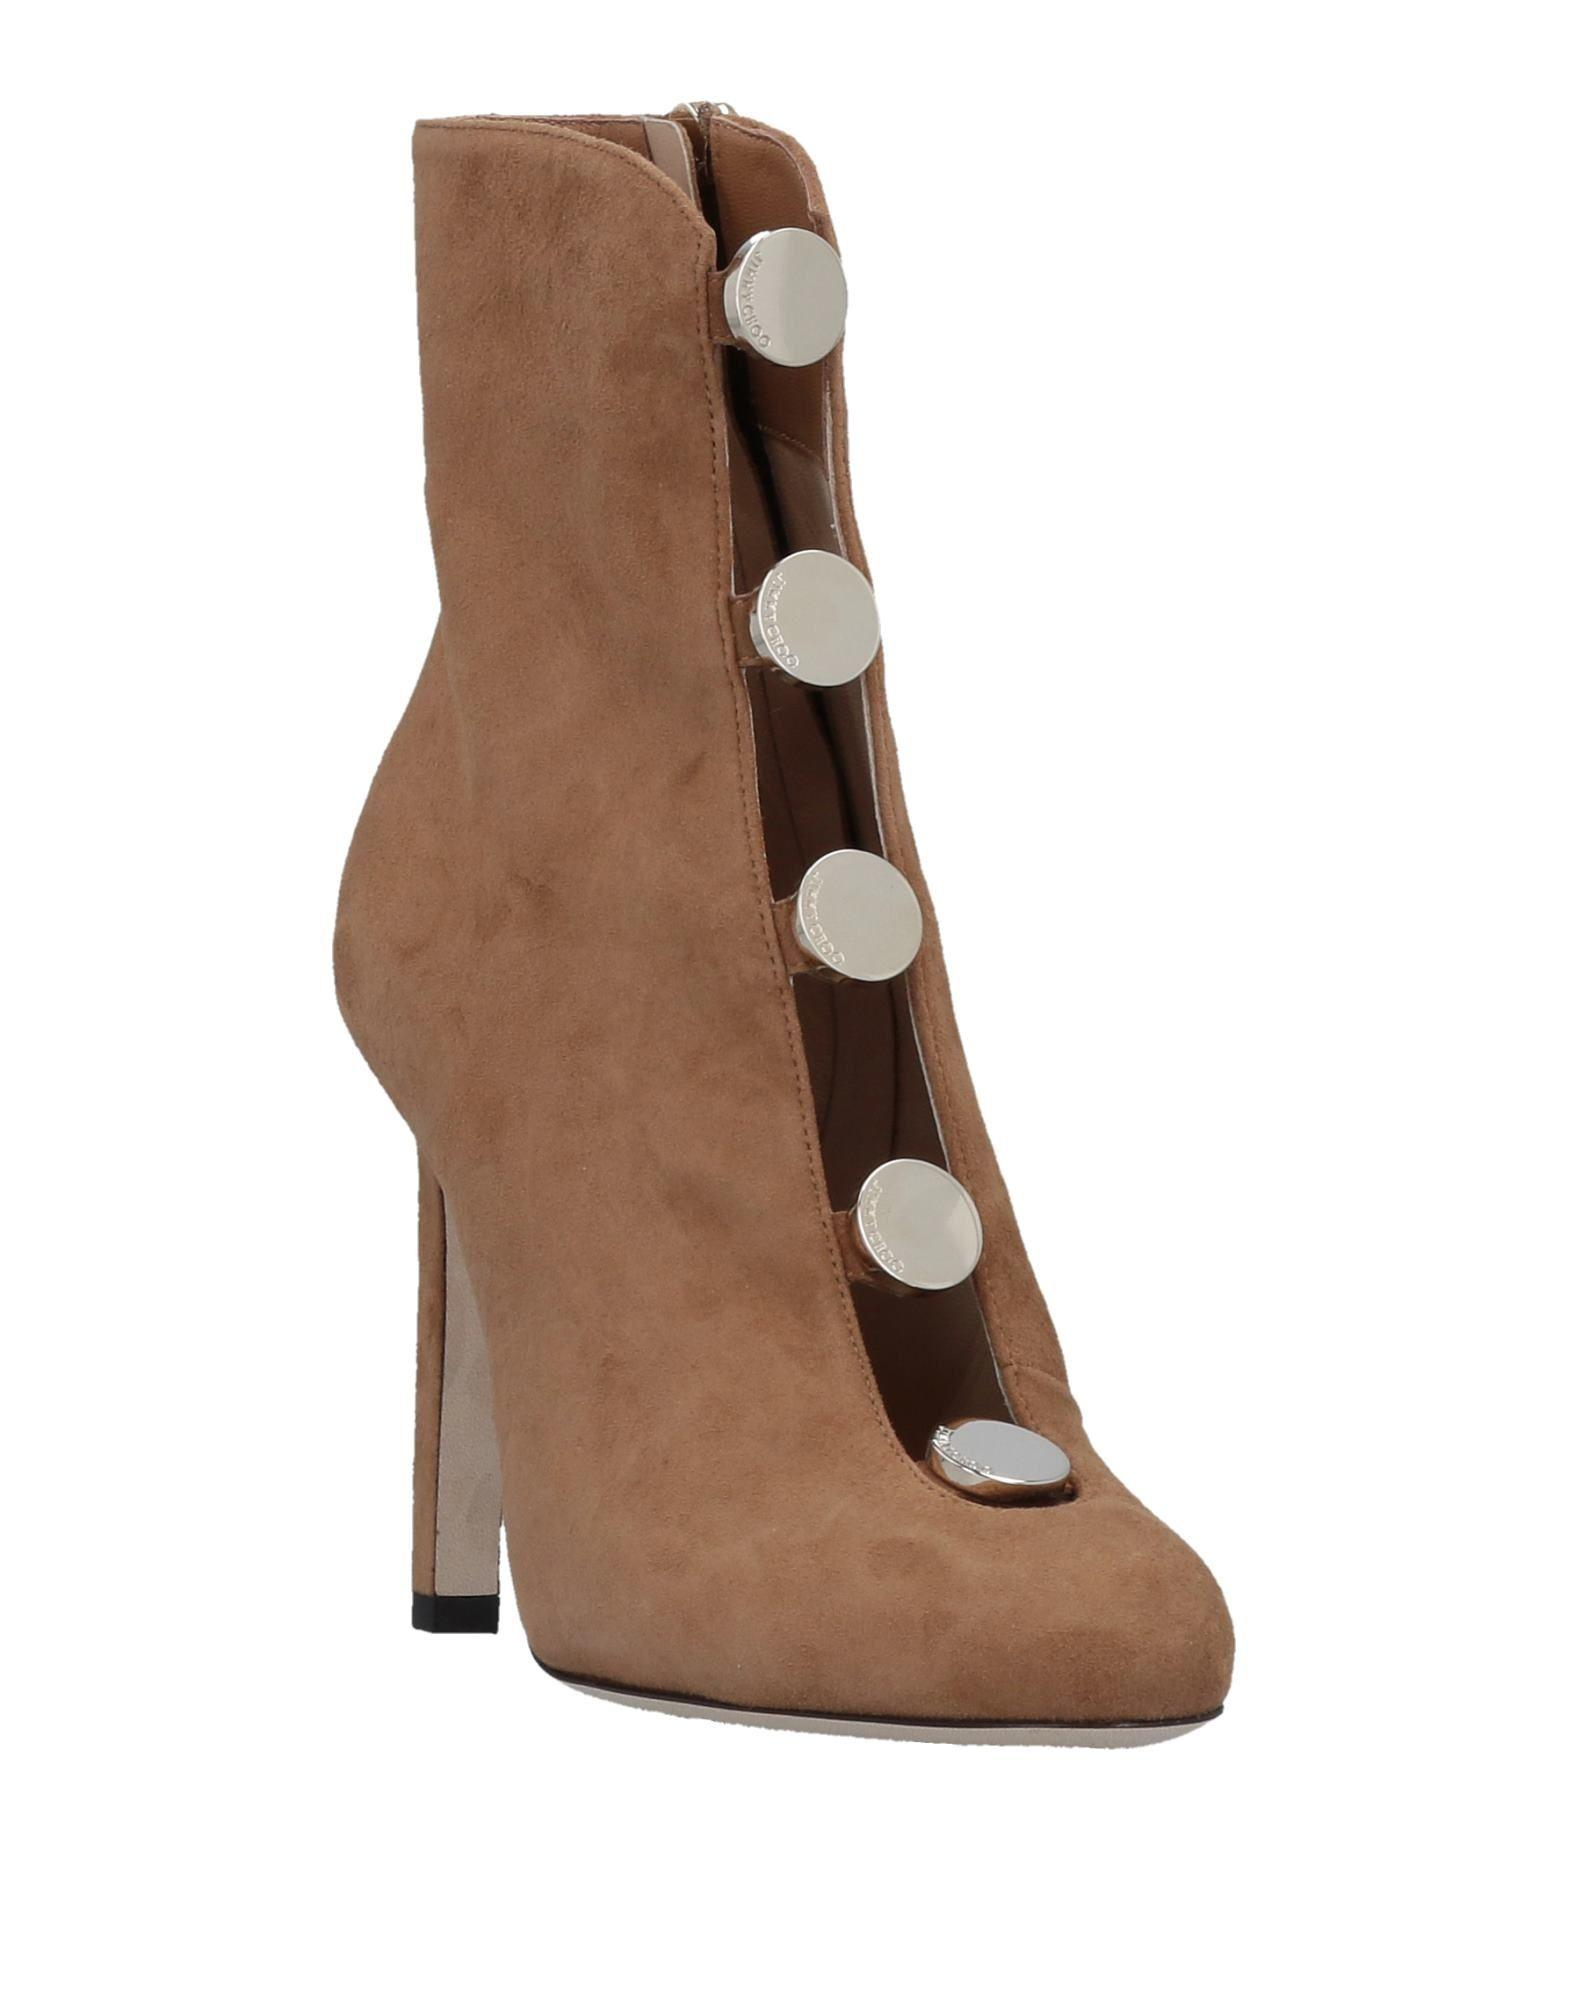 Jimmy Choo Suede Ankle Boots in Camel (Brown)